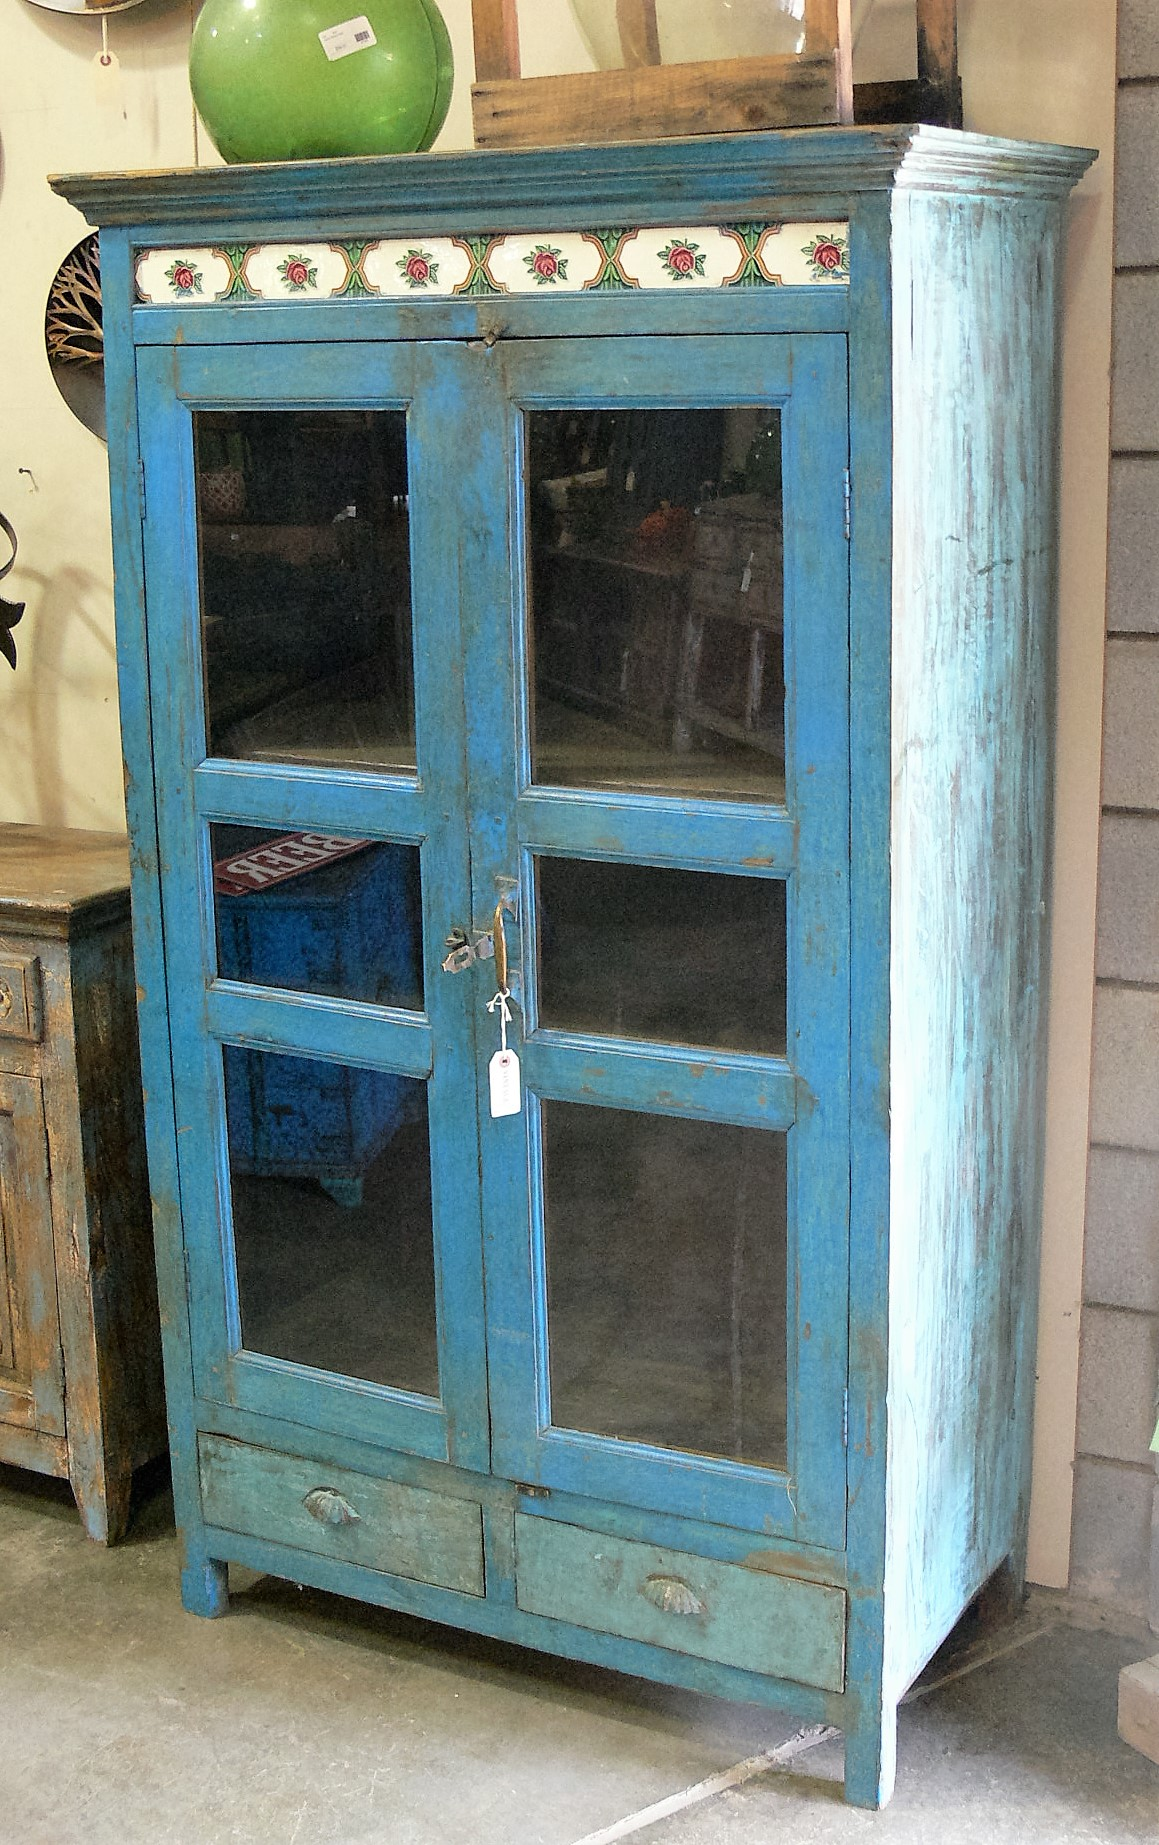 Furniture Market Imports Home Patio Antiques Garden Furniture Raleigh Nc